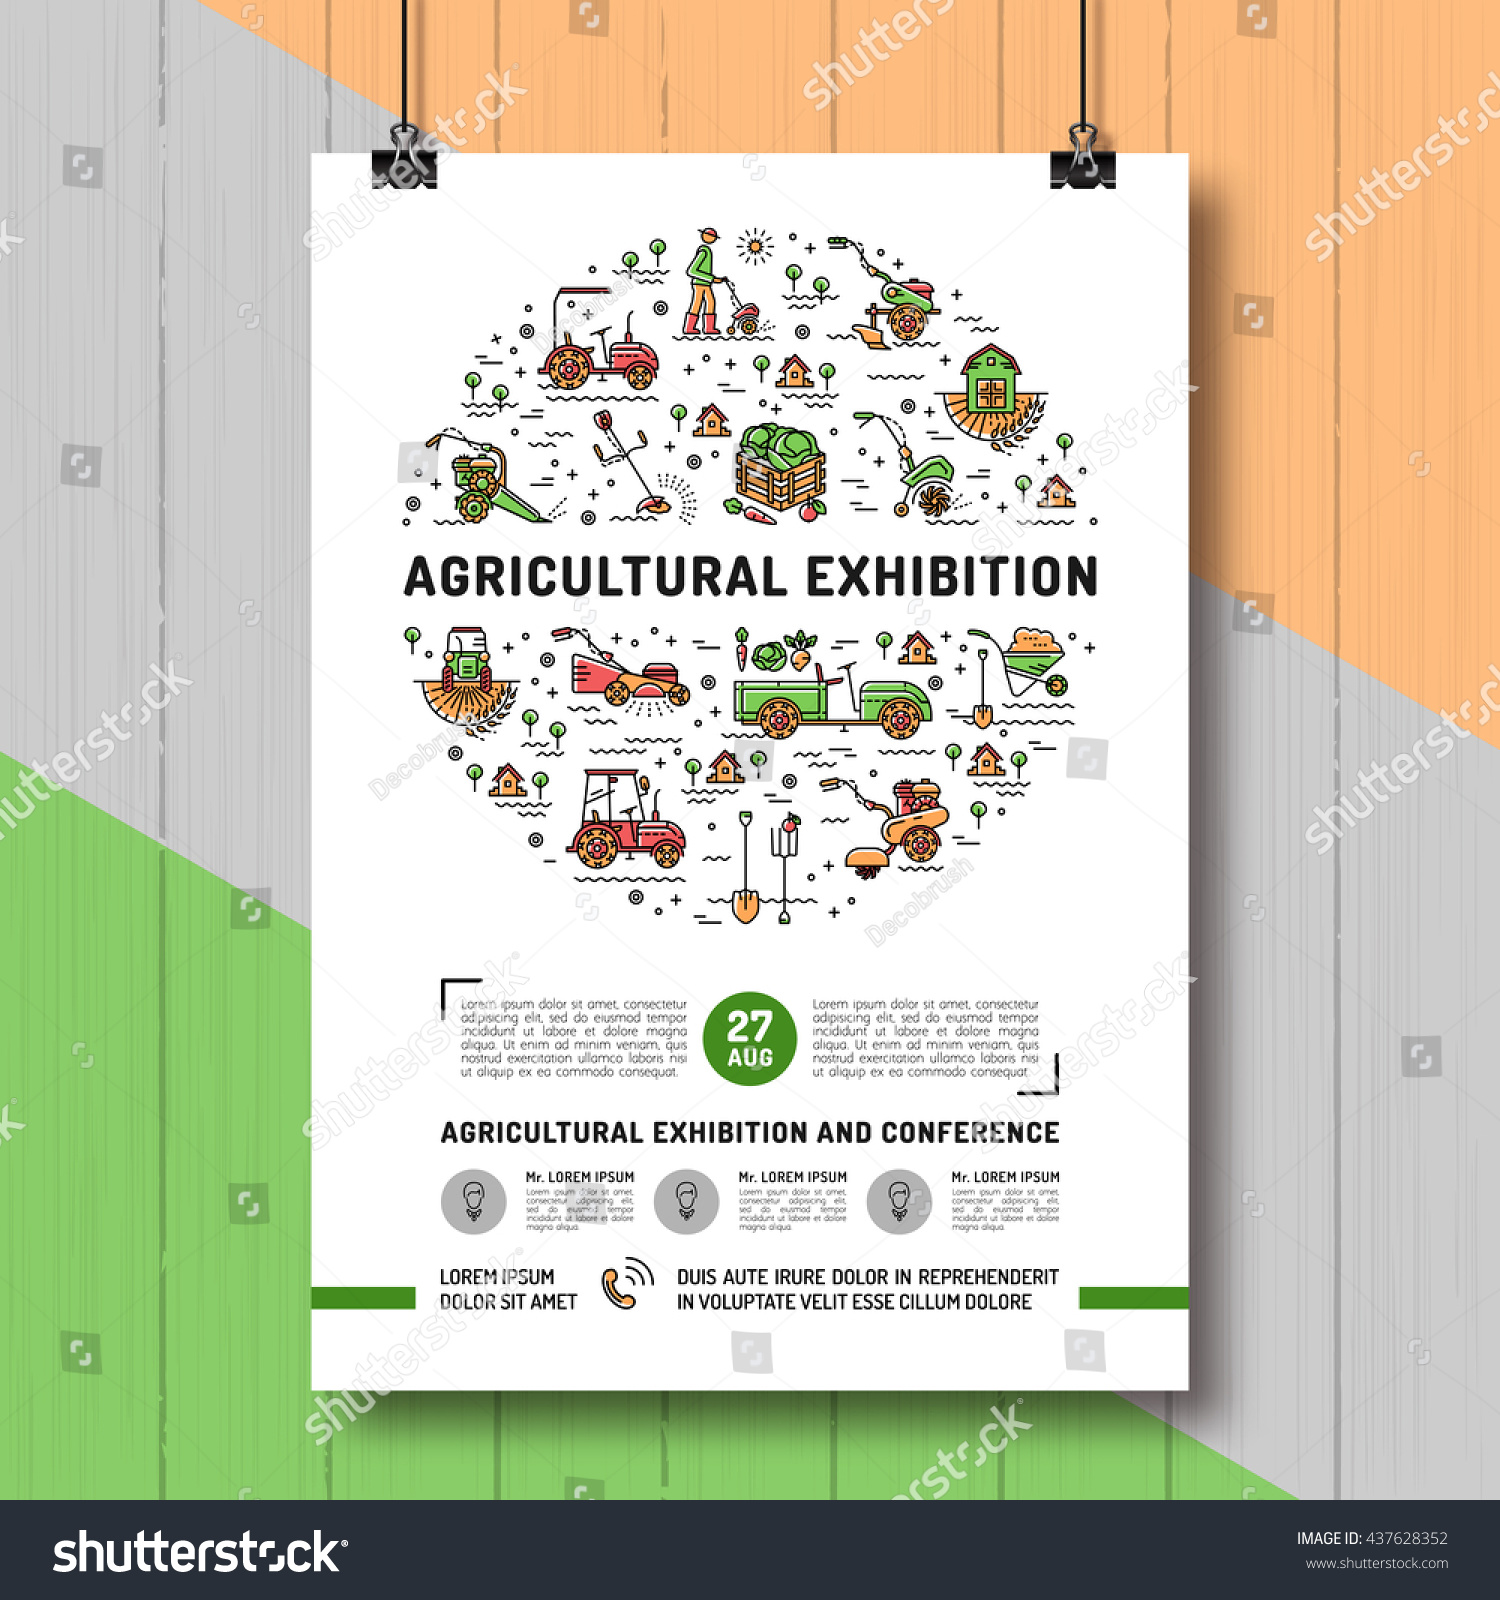 agricultural exhibition design poster card template stock vector agricultural exhibition design poster or card template mock up flyer banner vector